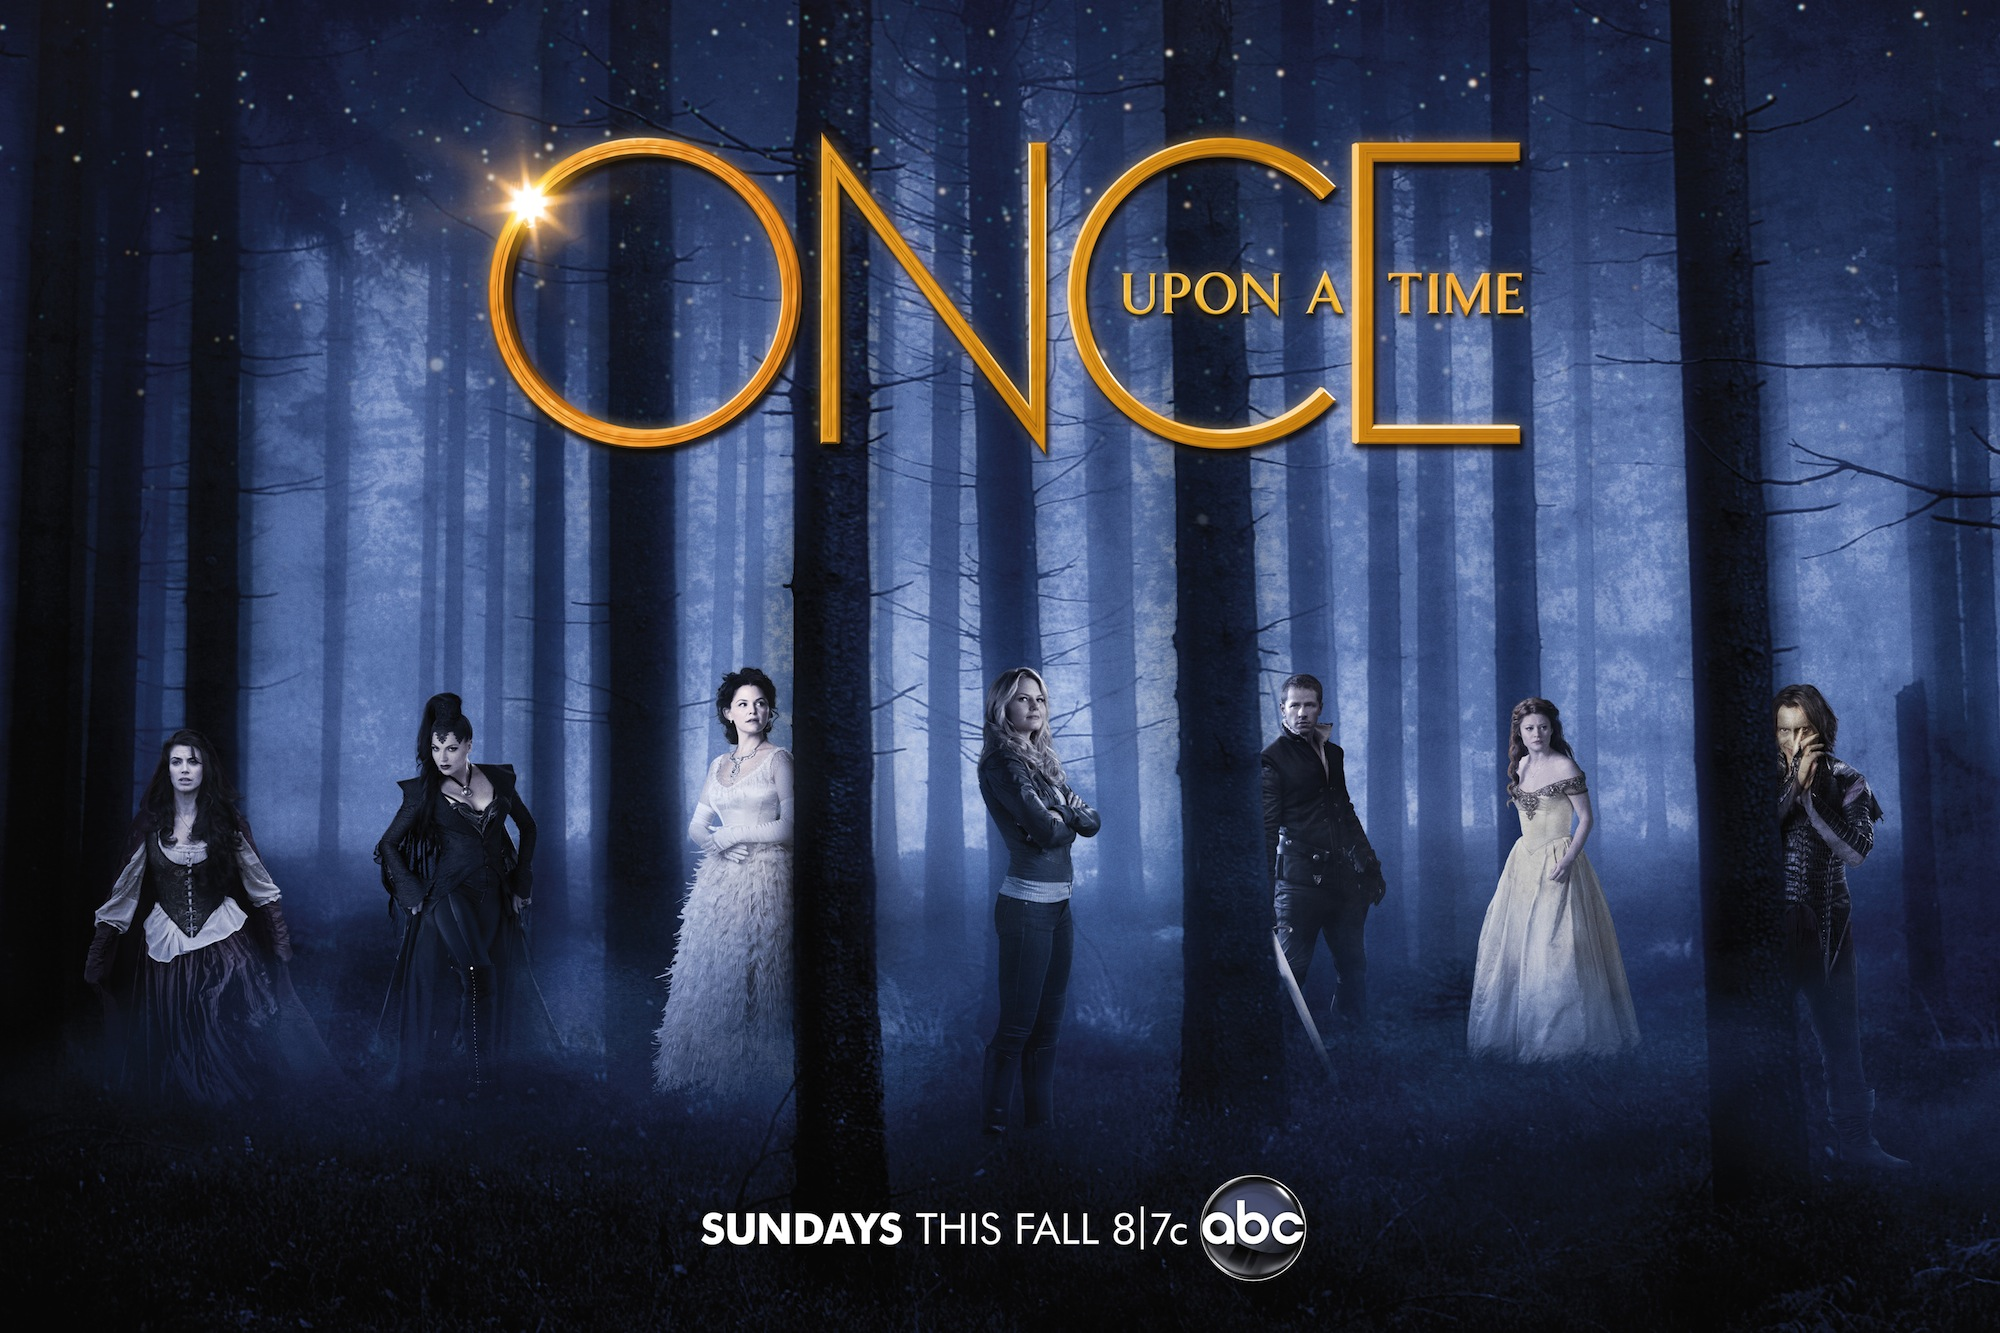 Time once upon a